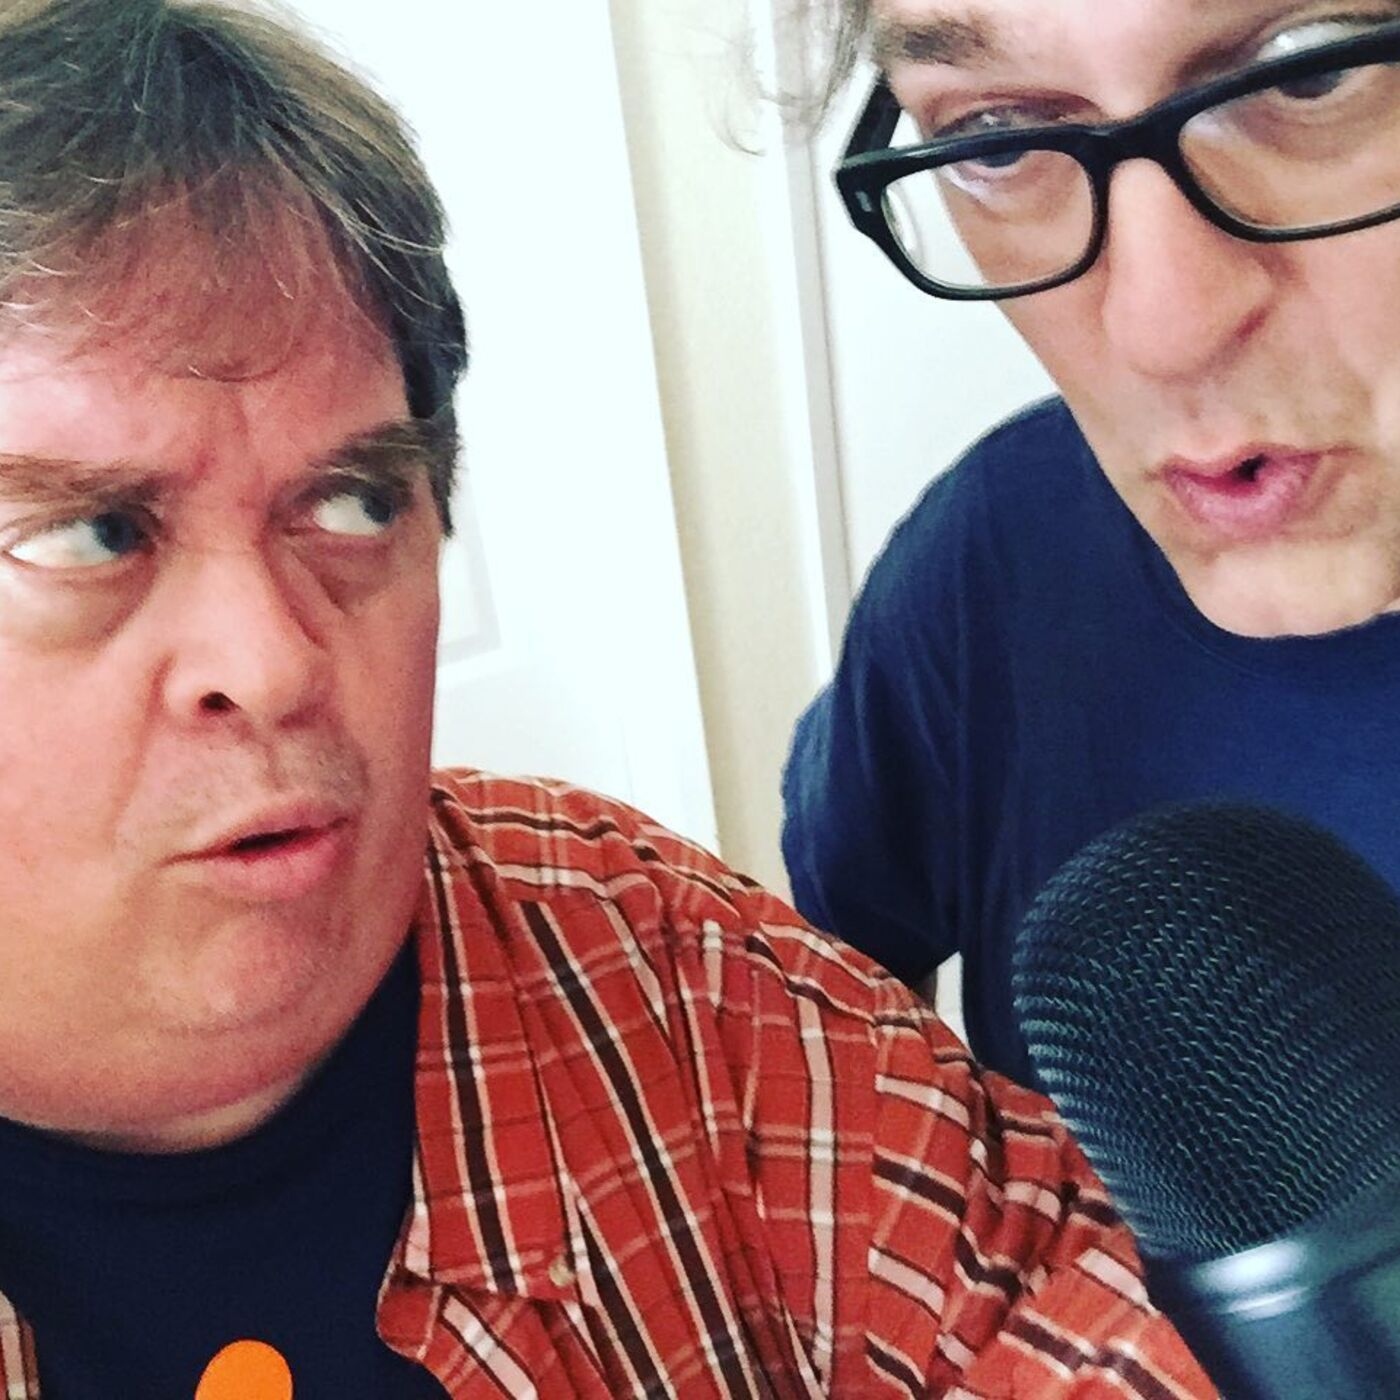 EPISODE #28: RONNIE BARNETT (The Muffs) starring in TWO GUYS TALKING ABOUT MUSIC